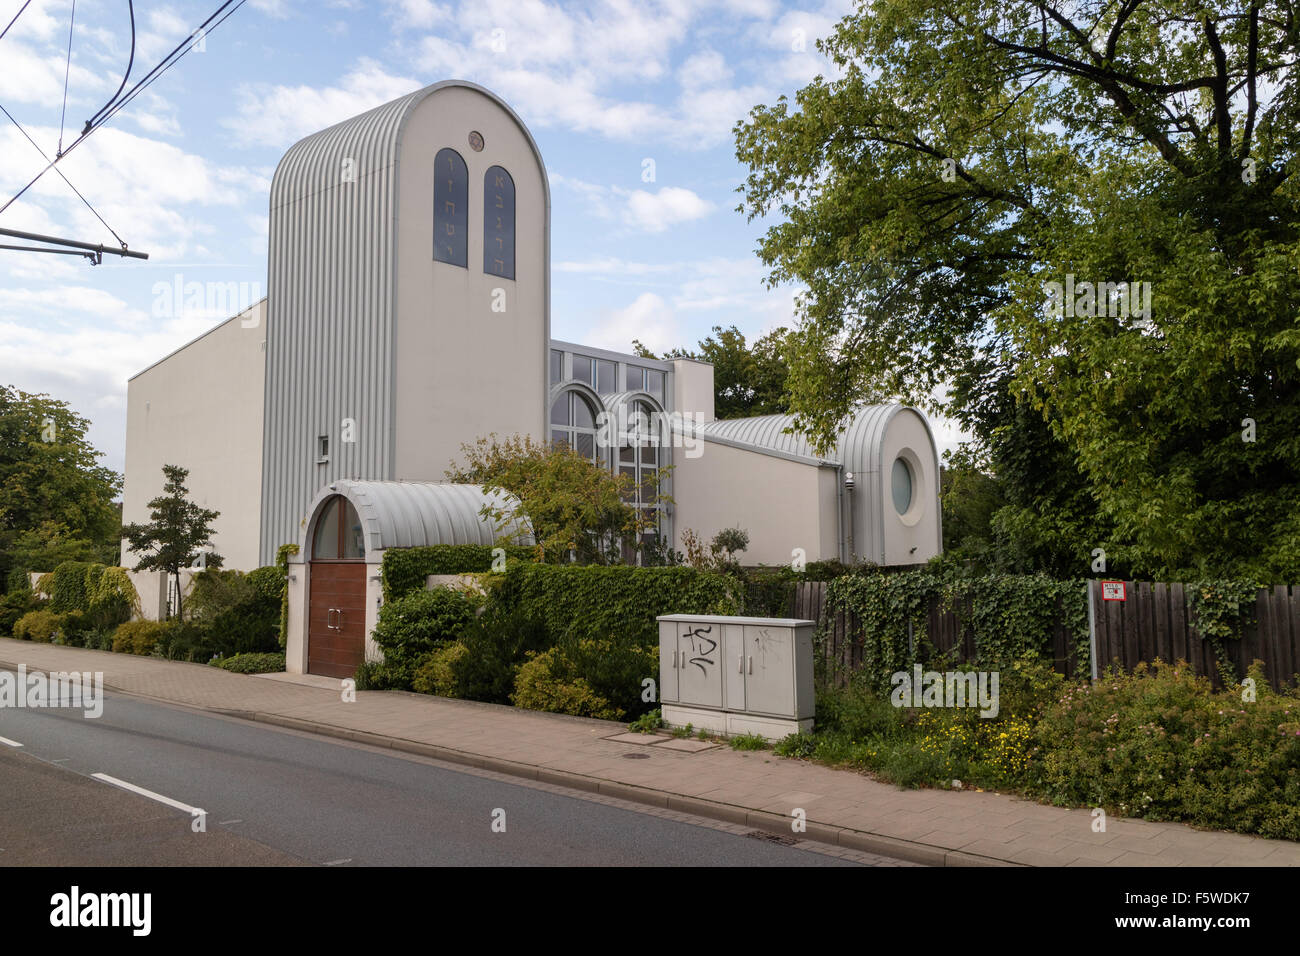 Synagogue on Detmolder Strasse, Bielefeld, Germany - Stock Image